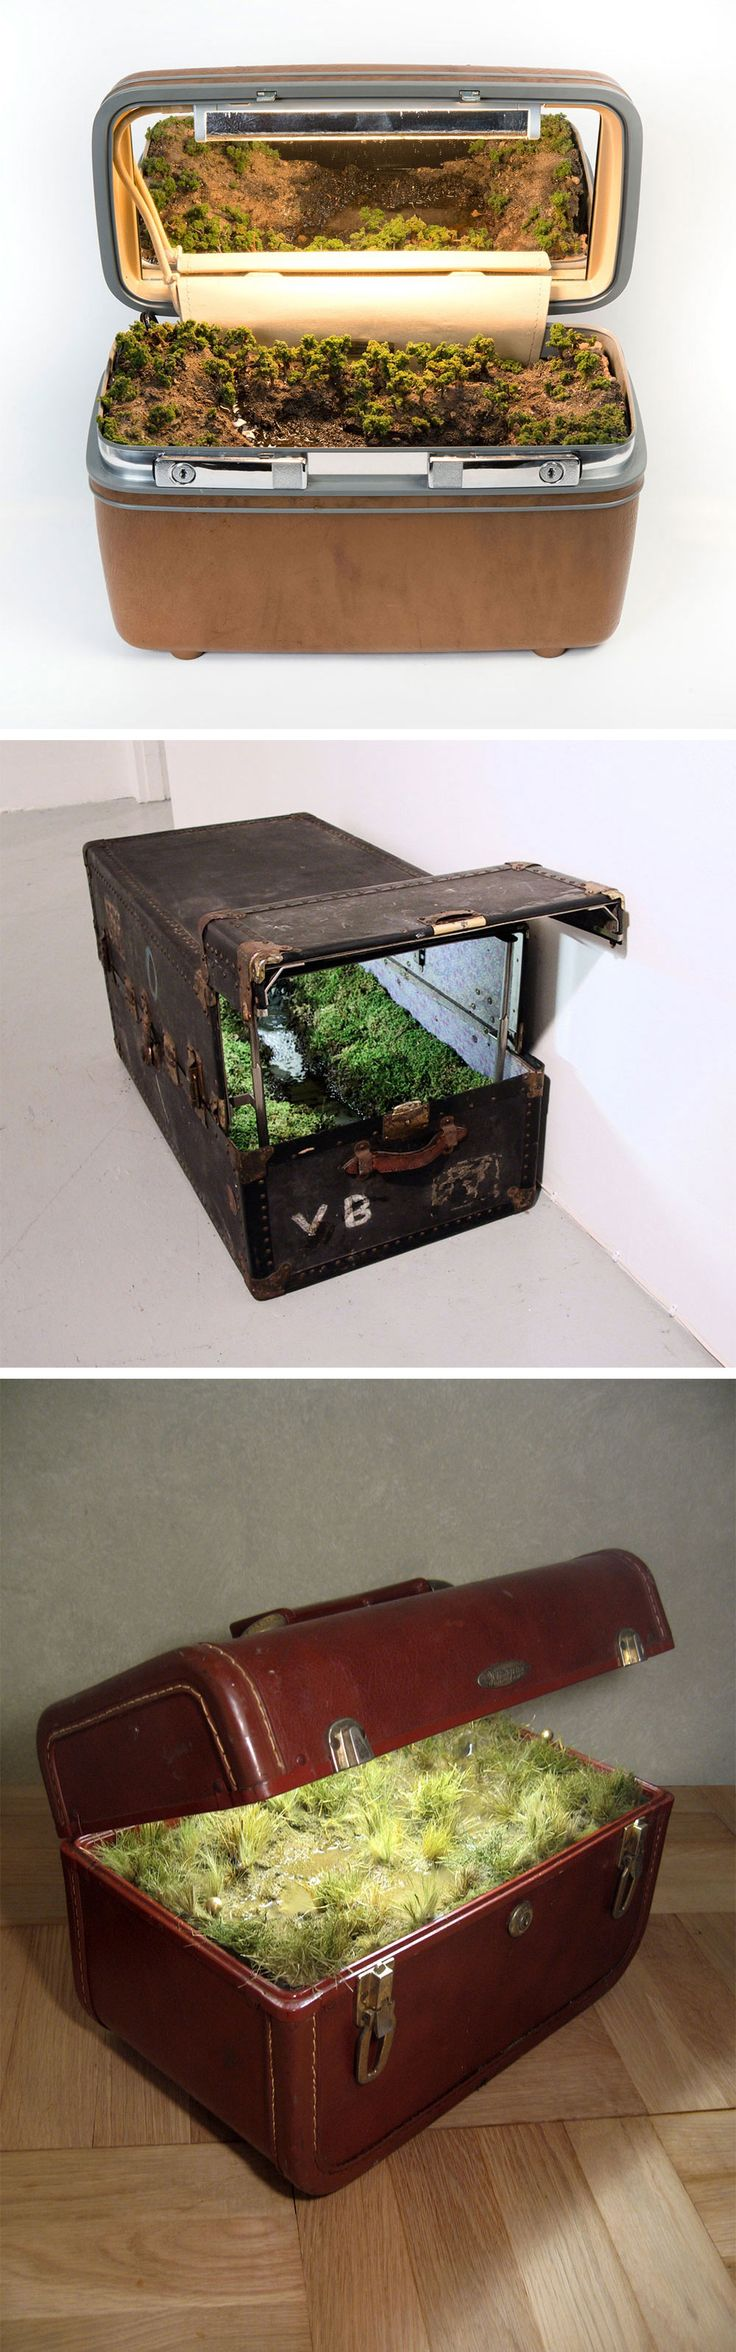 Traveling Landscapes: Miniature Ecosystems Tucked Inside Vintage Suitcases by Kathleen Vance